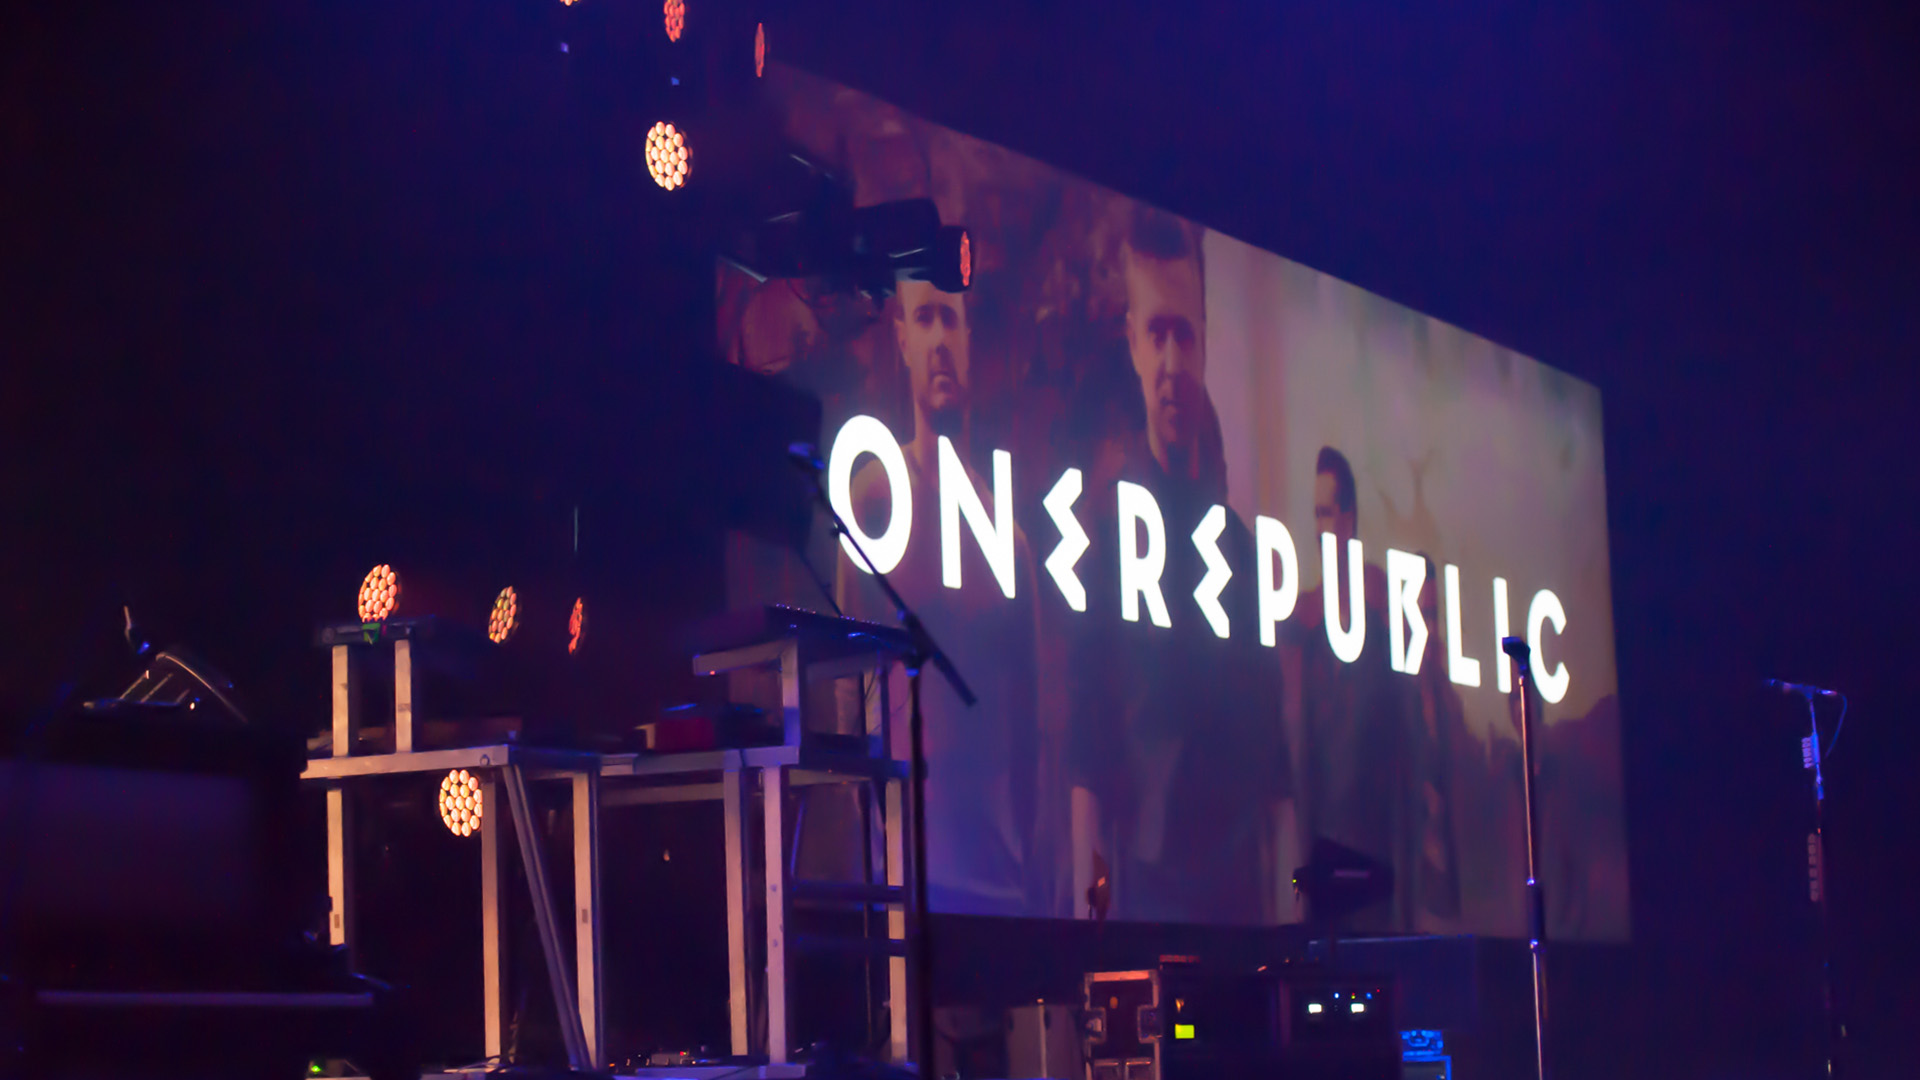 Siro World One Republic Concert Orlando Florida 4